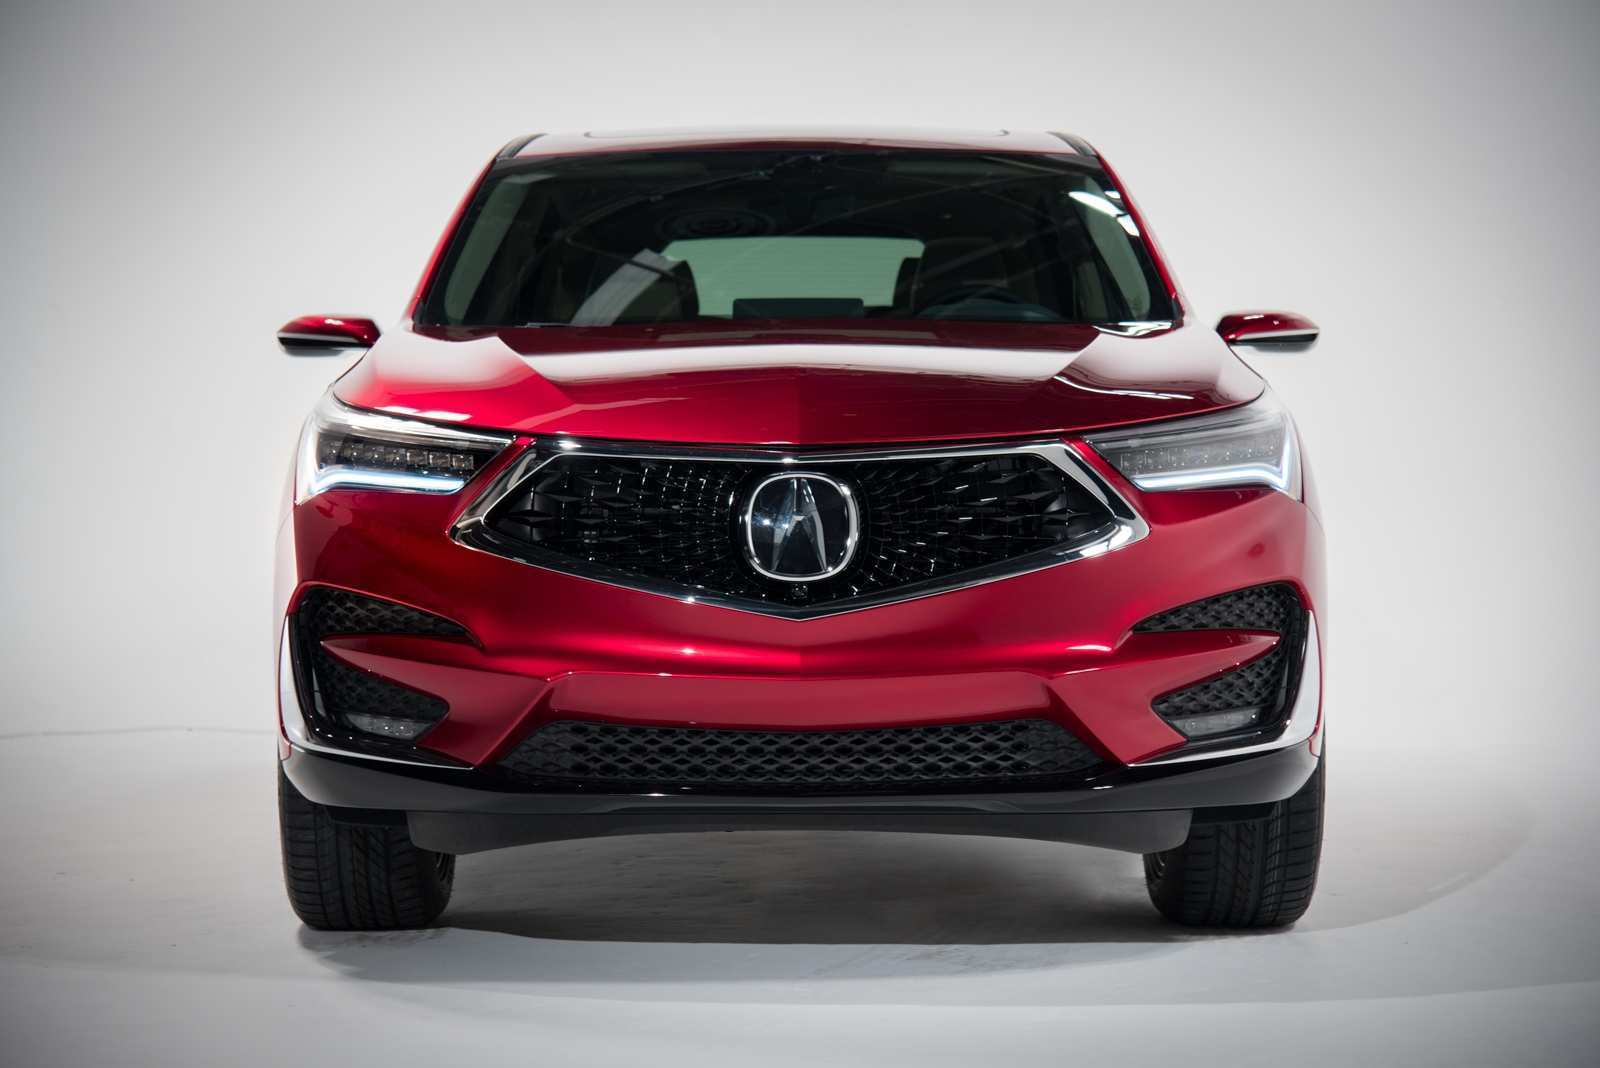 65 New 2019 Acura Rdx Concept Images with 2019 Acura Rdx Concept